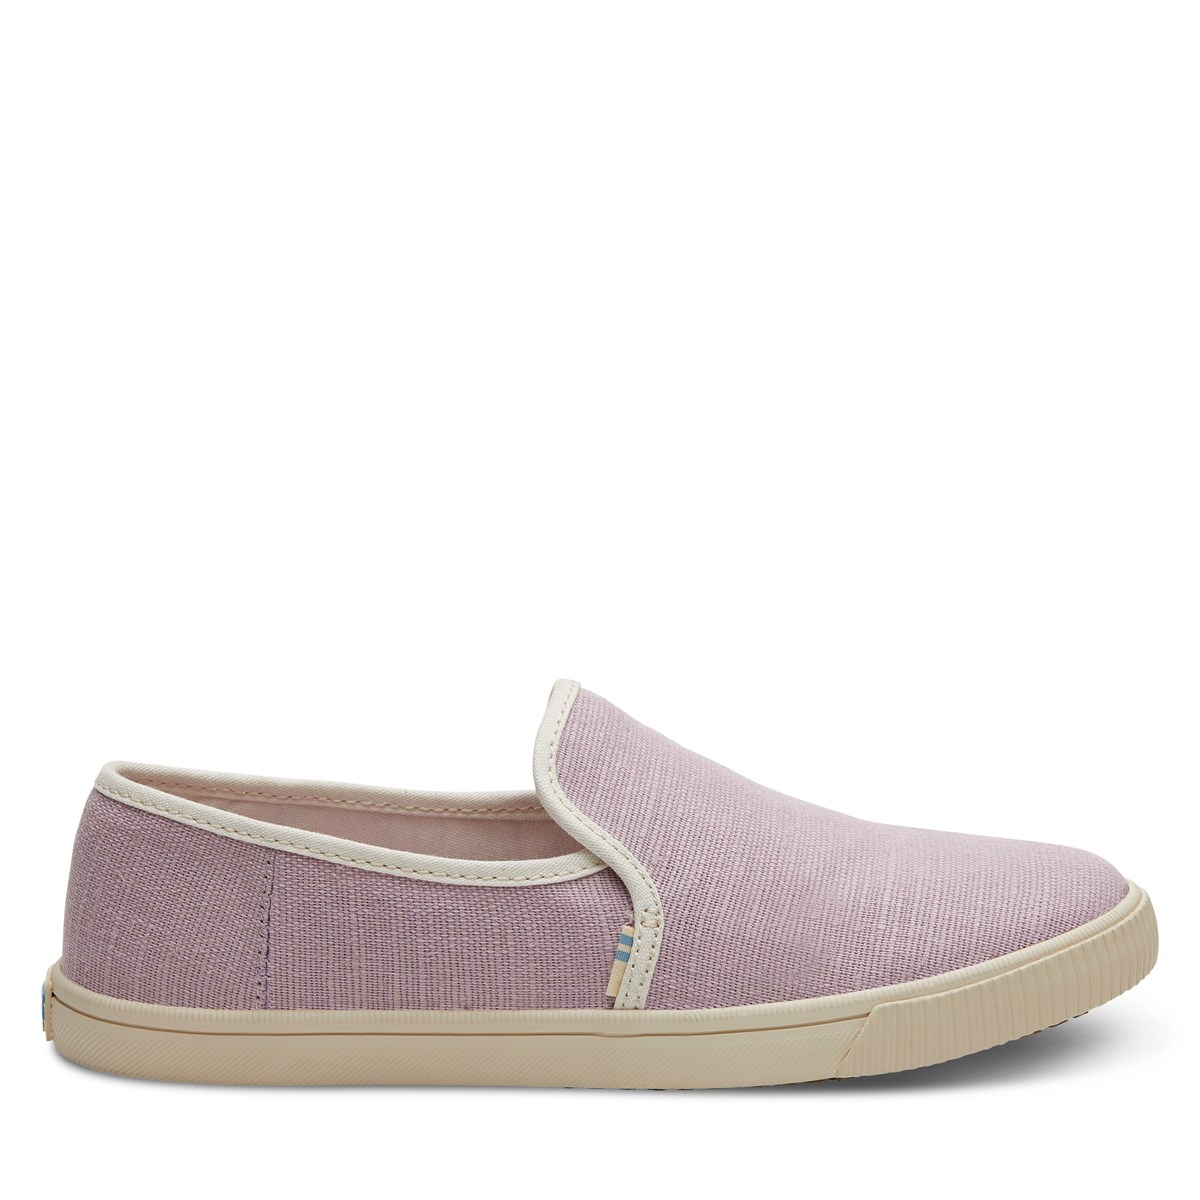 Women's Vegan Clemente Heritage Slip-On Shoes in Lilac